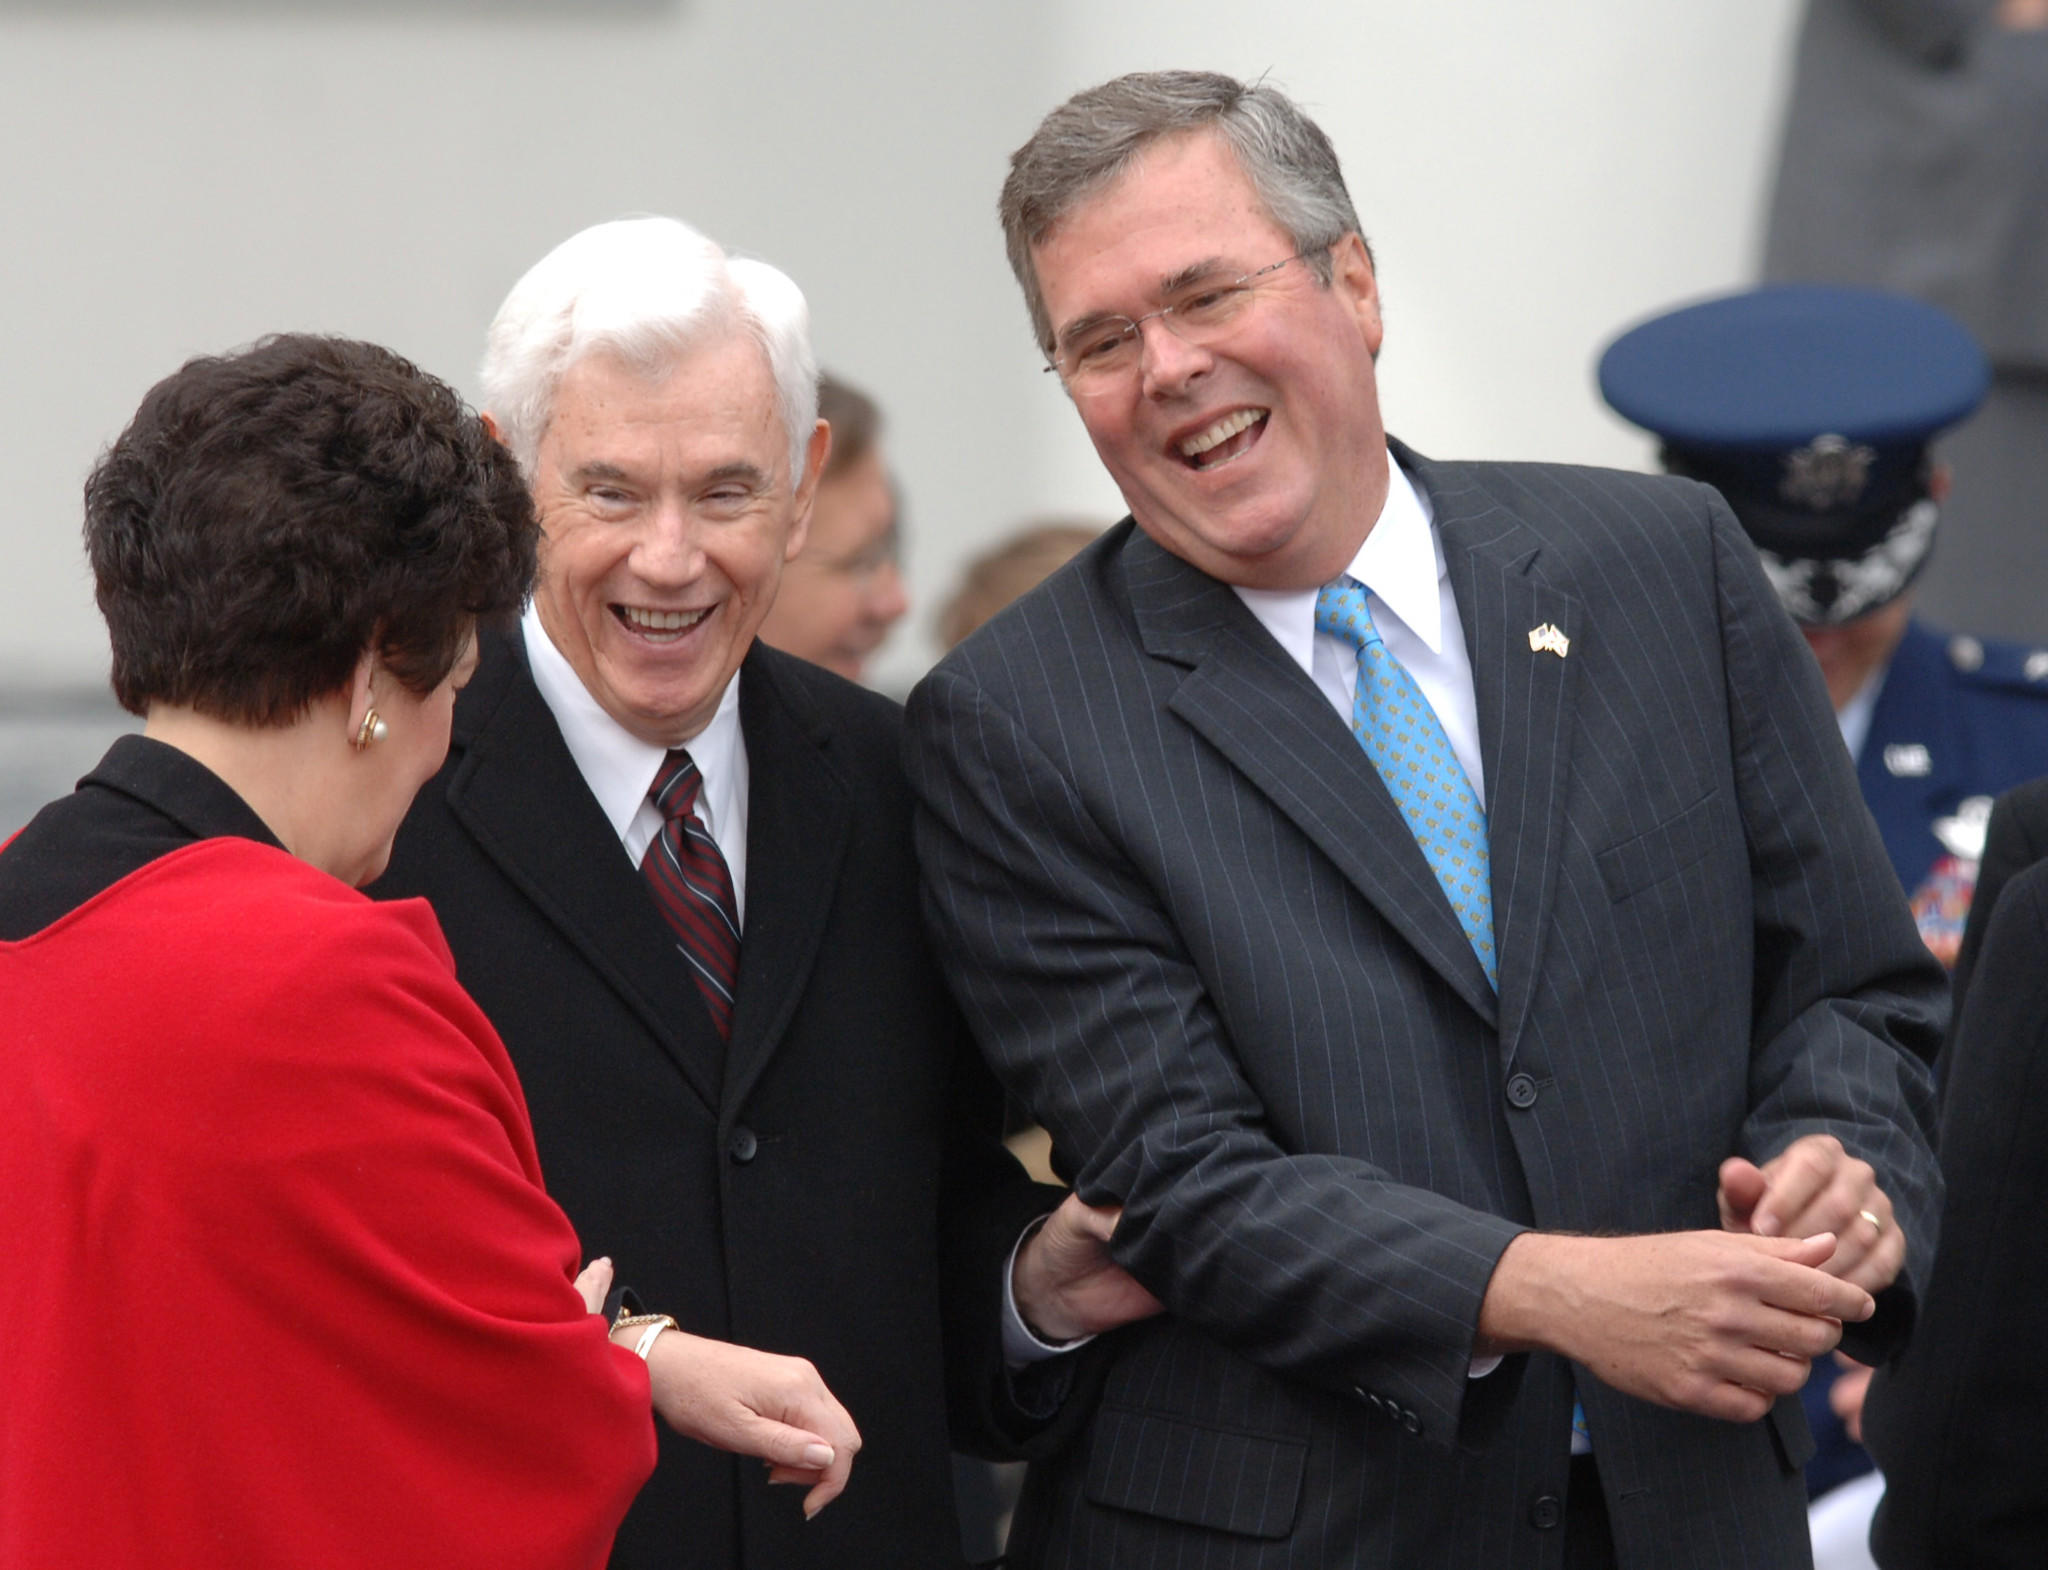 Gov. Jeb Bush shares a laugh with former Governor Reubin Askew and Lt. Gov. Toni Jennings shortly before Charlie Crist was sworn-in as the 44th governor of Florida, at the Old Capitol, in Tallahassee, Tuesday, January 2, 2007.